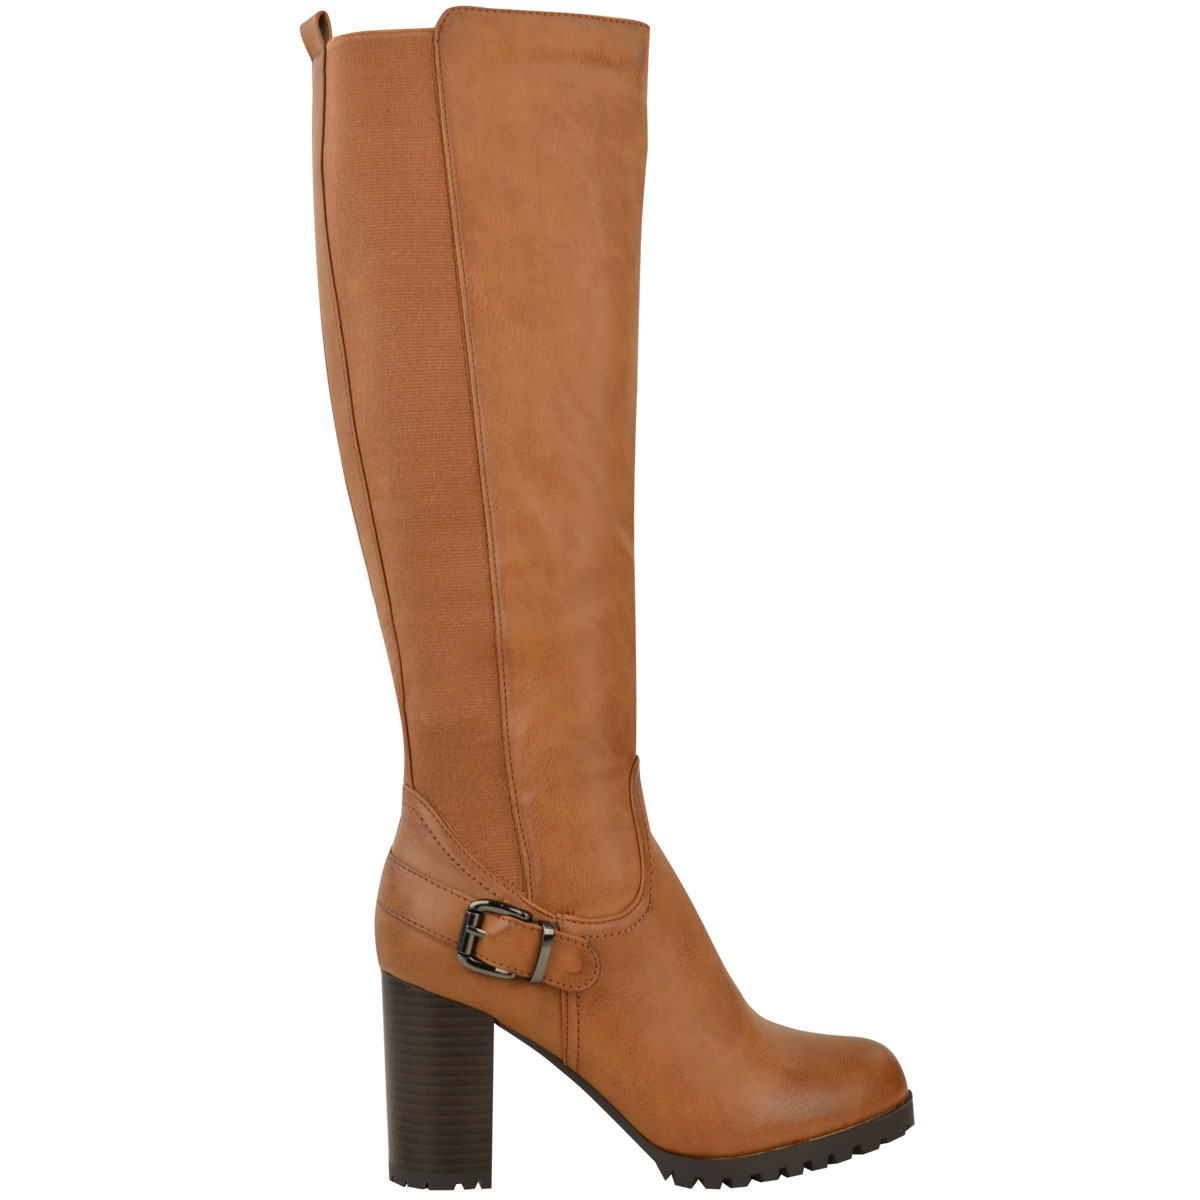 Womens-Ladies-Knee-Calf-High-Boots-Block-Heels-Stretchy-Thigh-Shoes-Grip-Size thumbnail 8